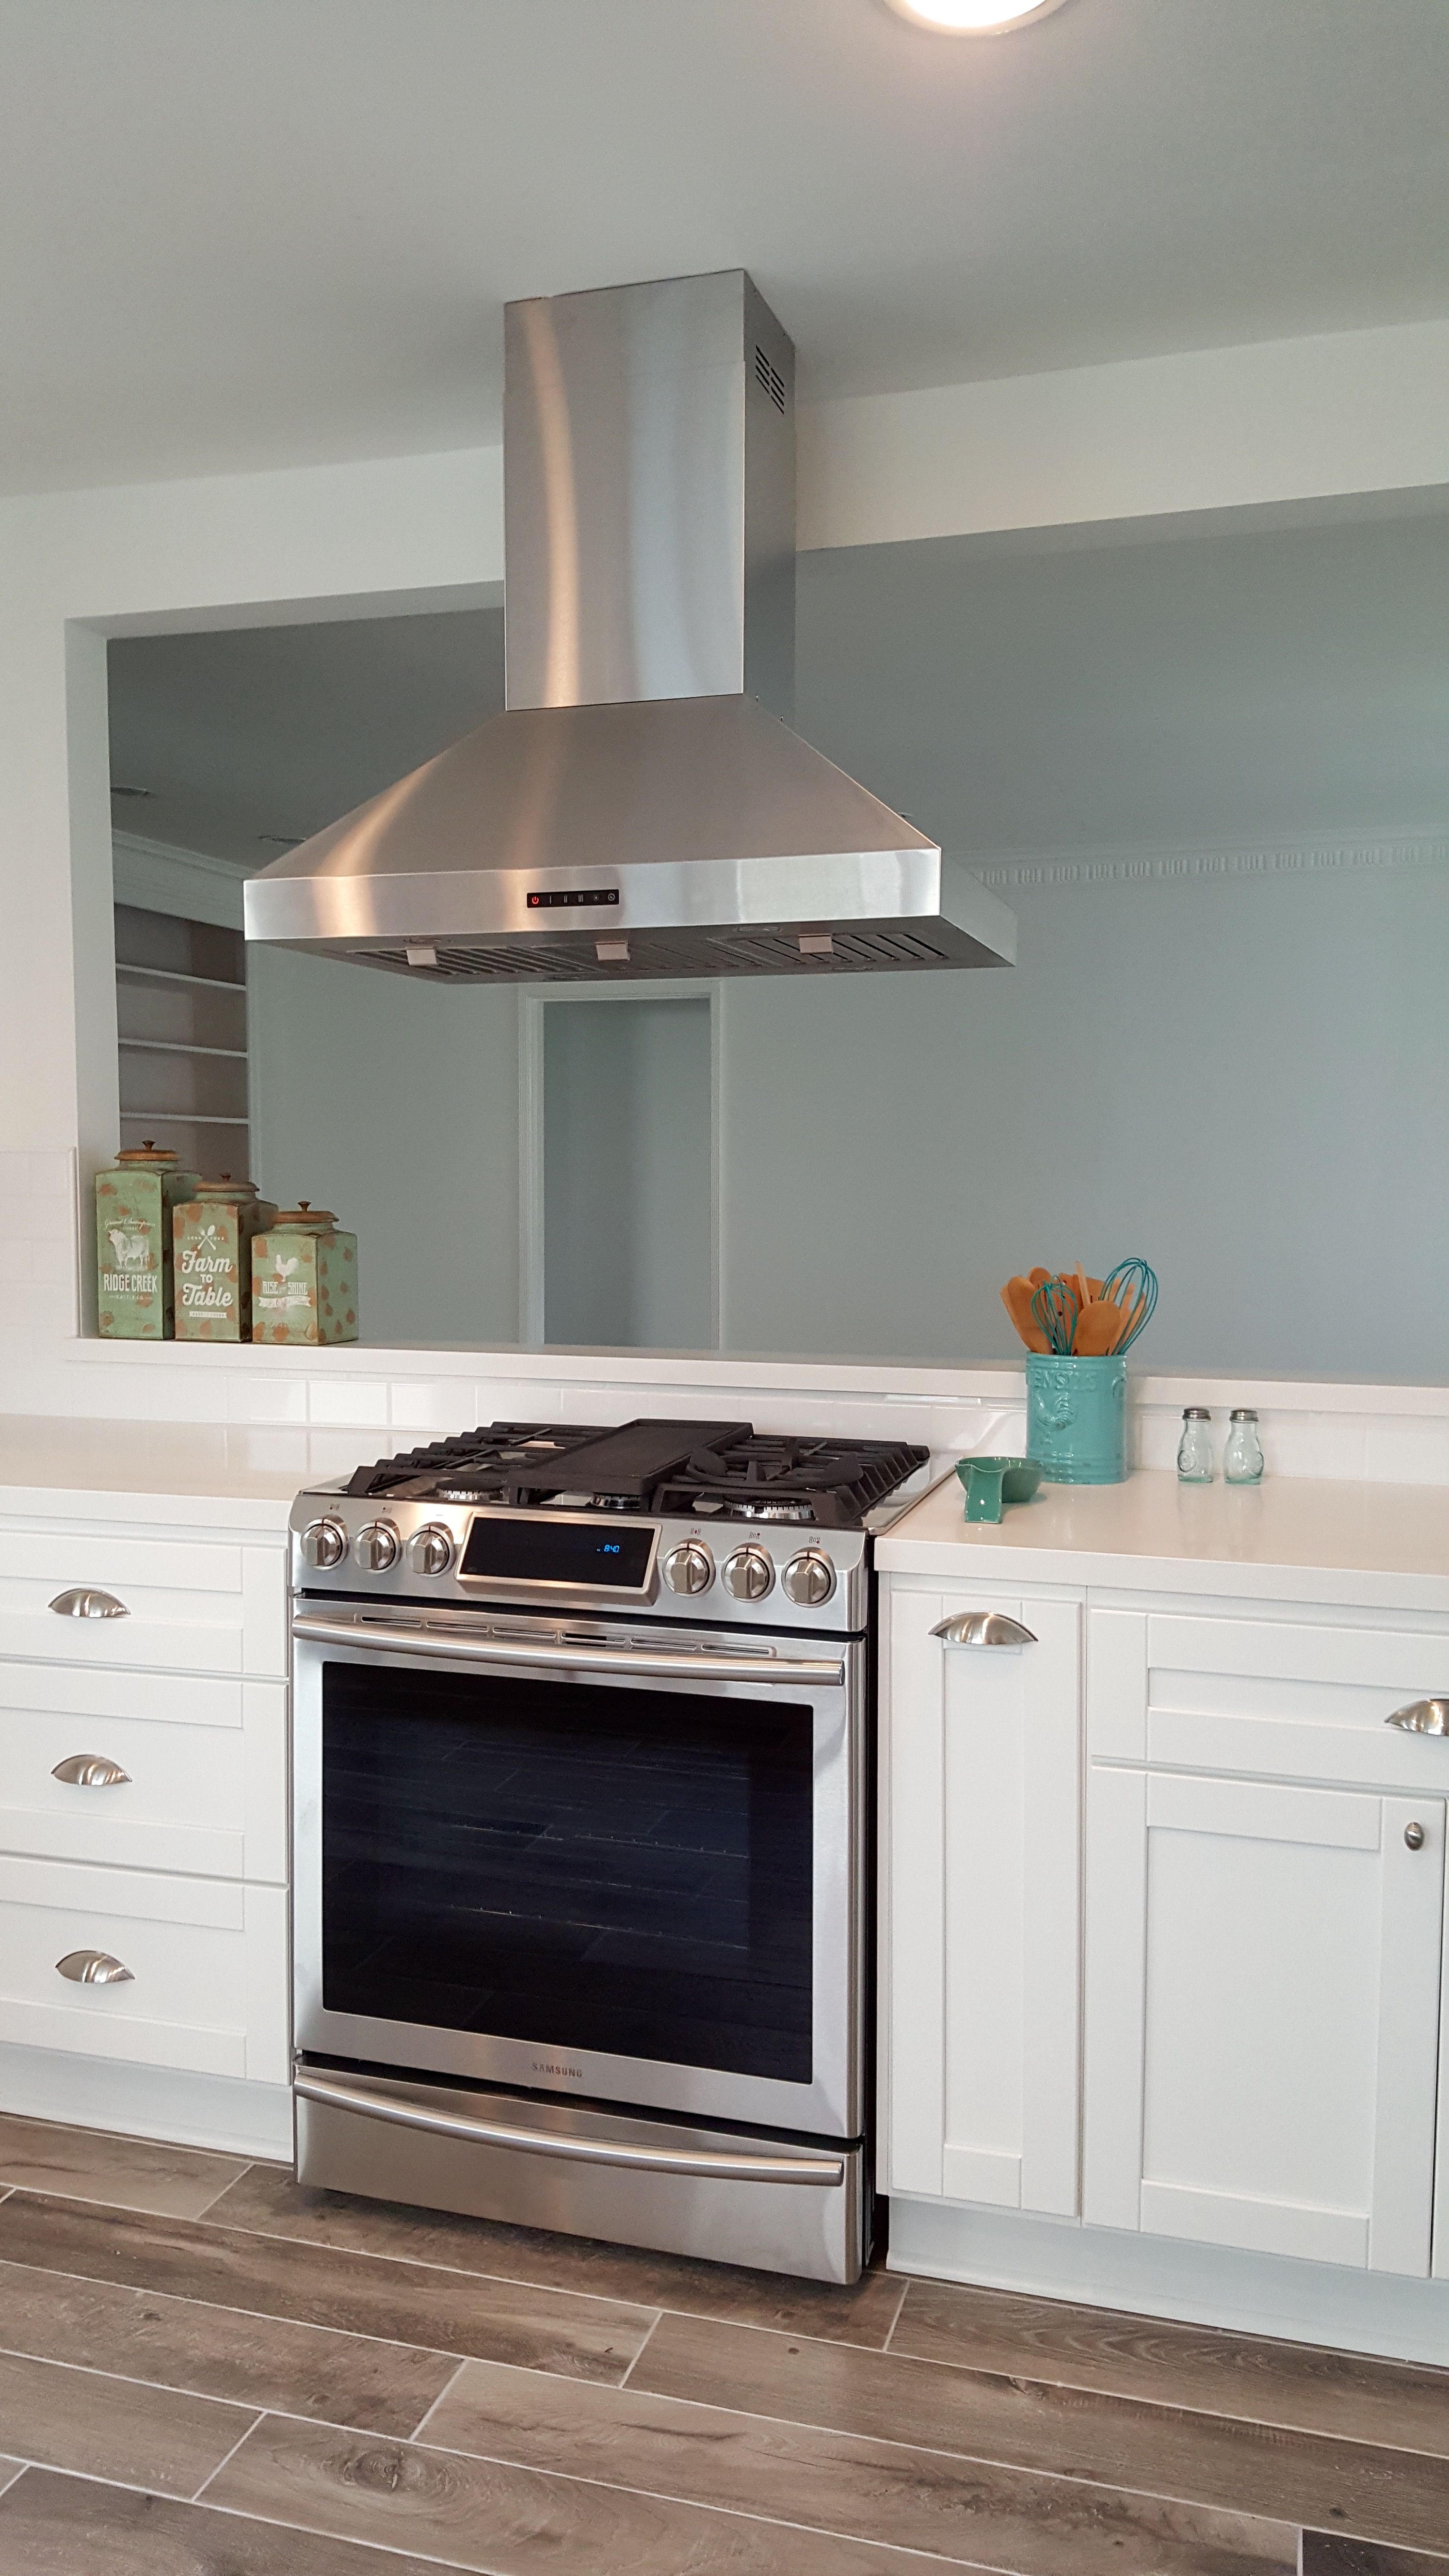 Kitchen remodel pleted by Los Angeles Kitchen remodeling